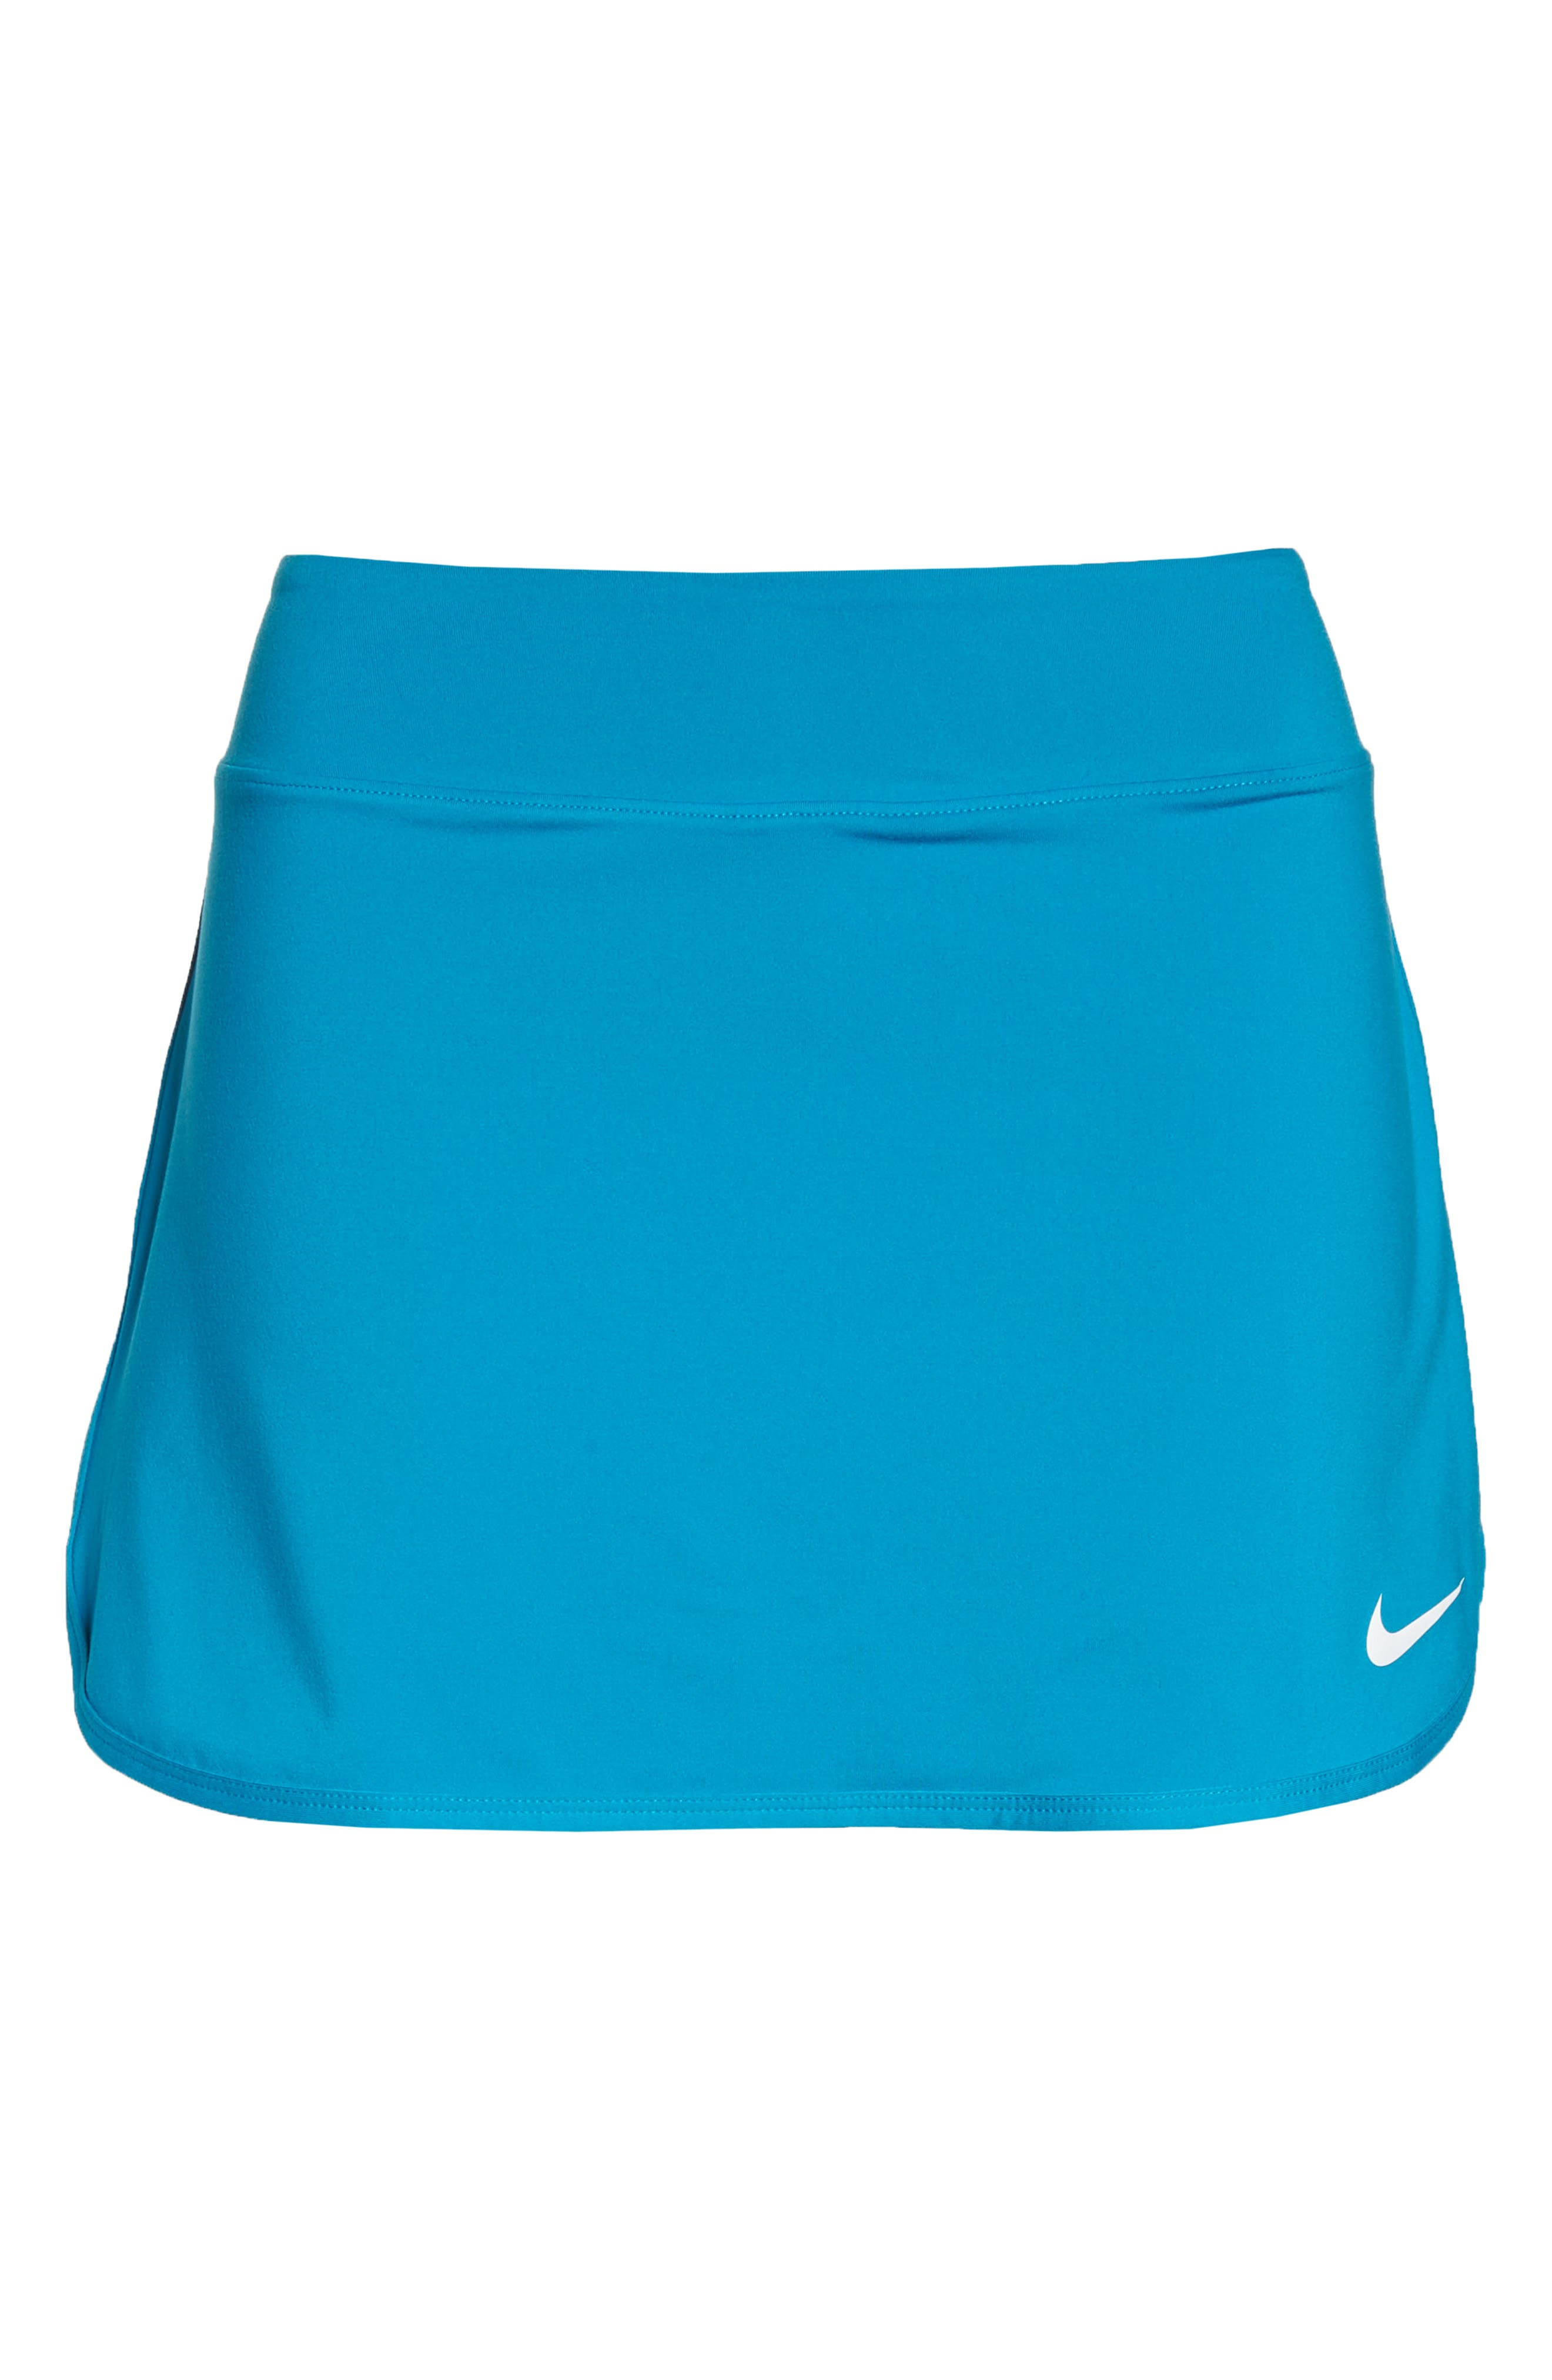 'Pure' Dri-FIT Tennis Skirt,                             Alternate thumbnail 7, color,                             Neo Turquoise/ White